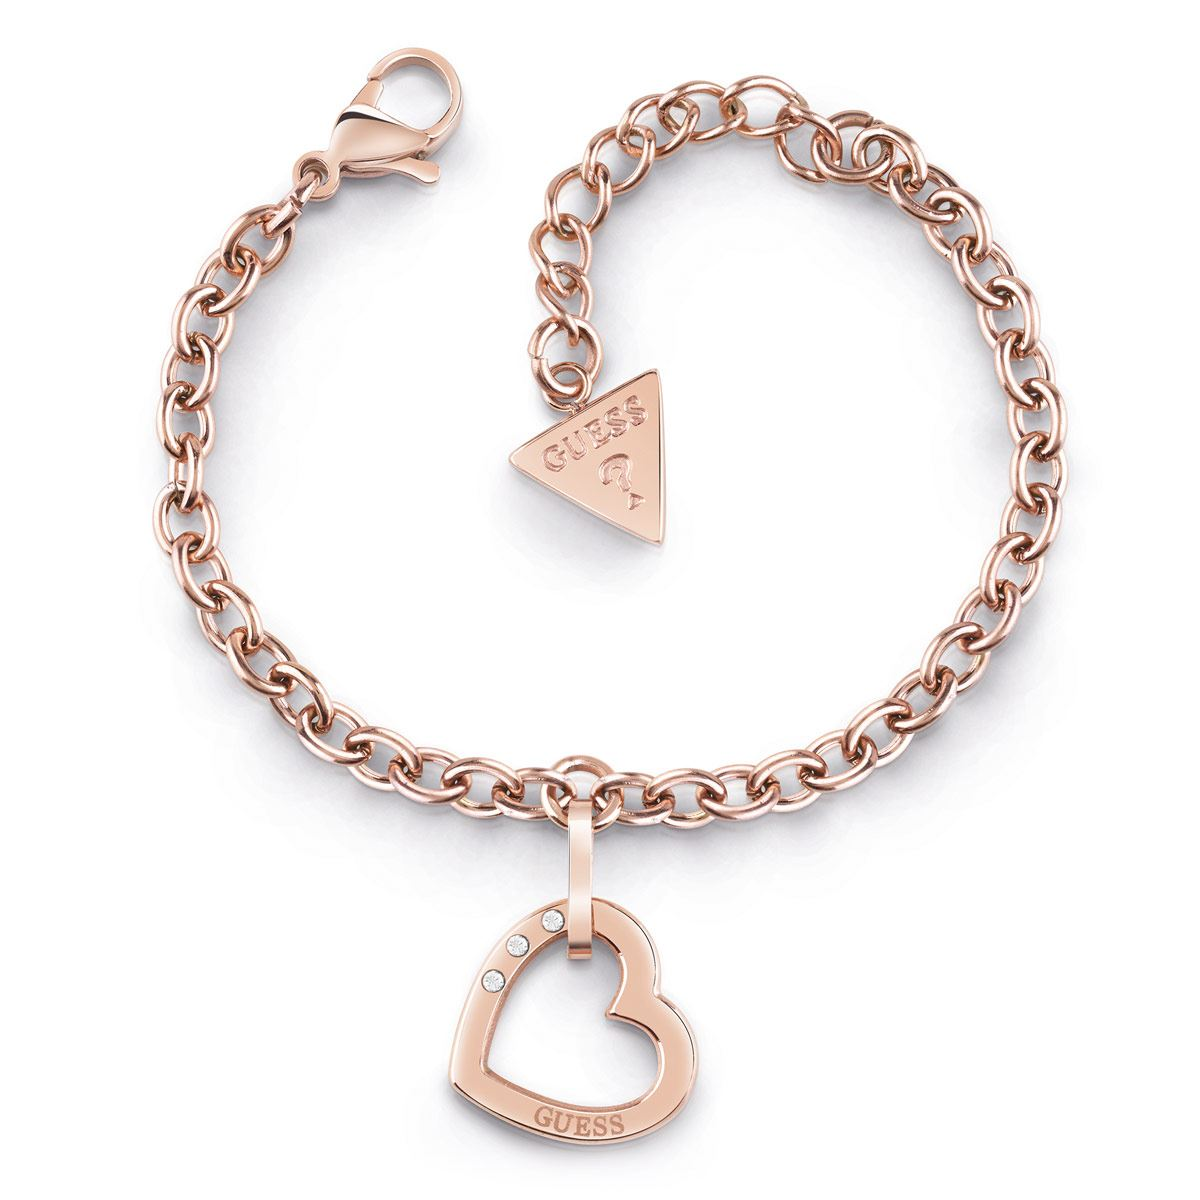 Brazalete GUESS Hearted chain oro rosa